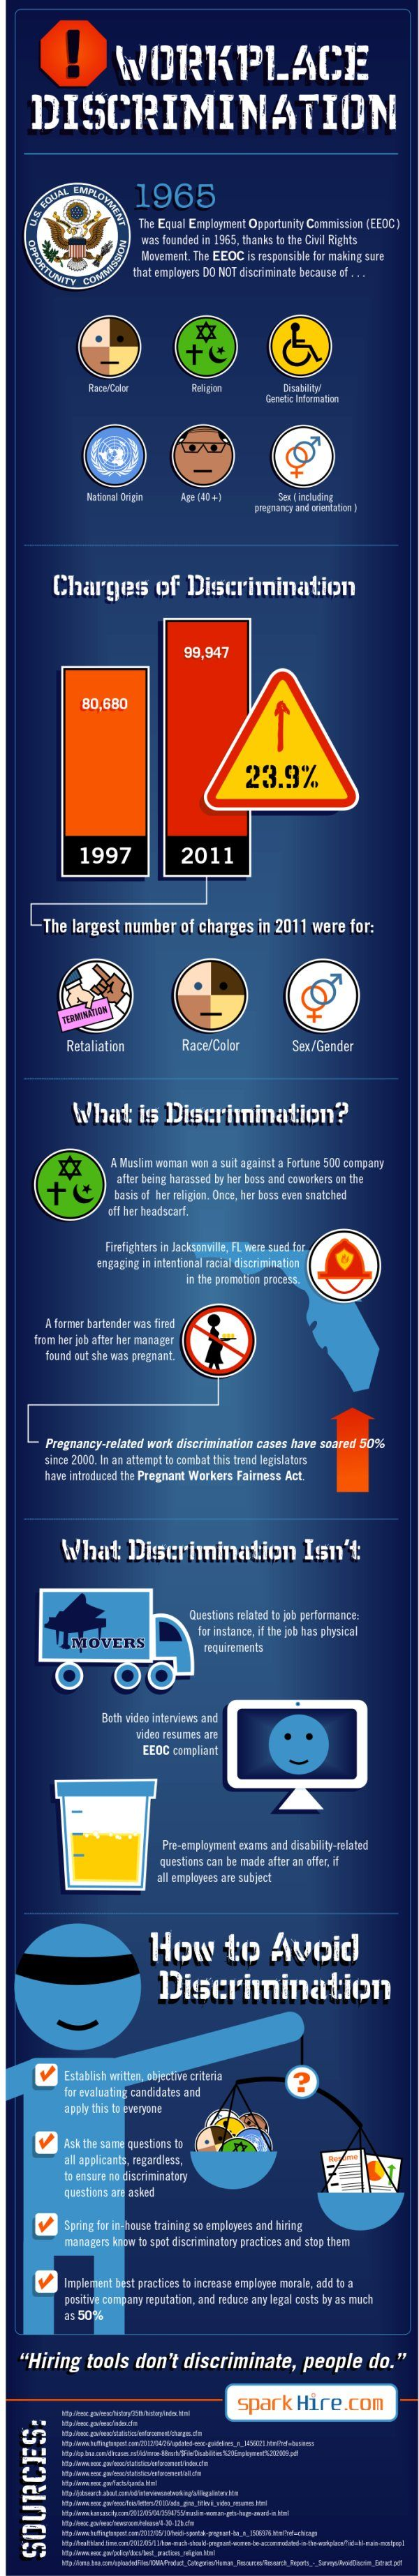 Discrimination In The Workplace  Infographic Concerned About Preventing Workplace Discrimination